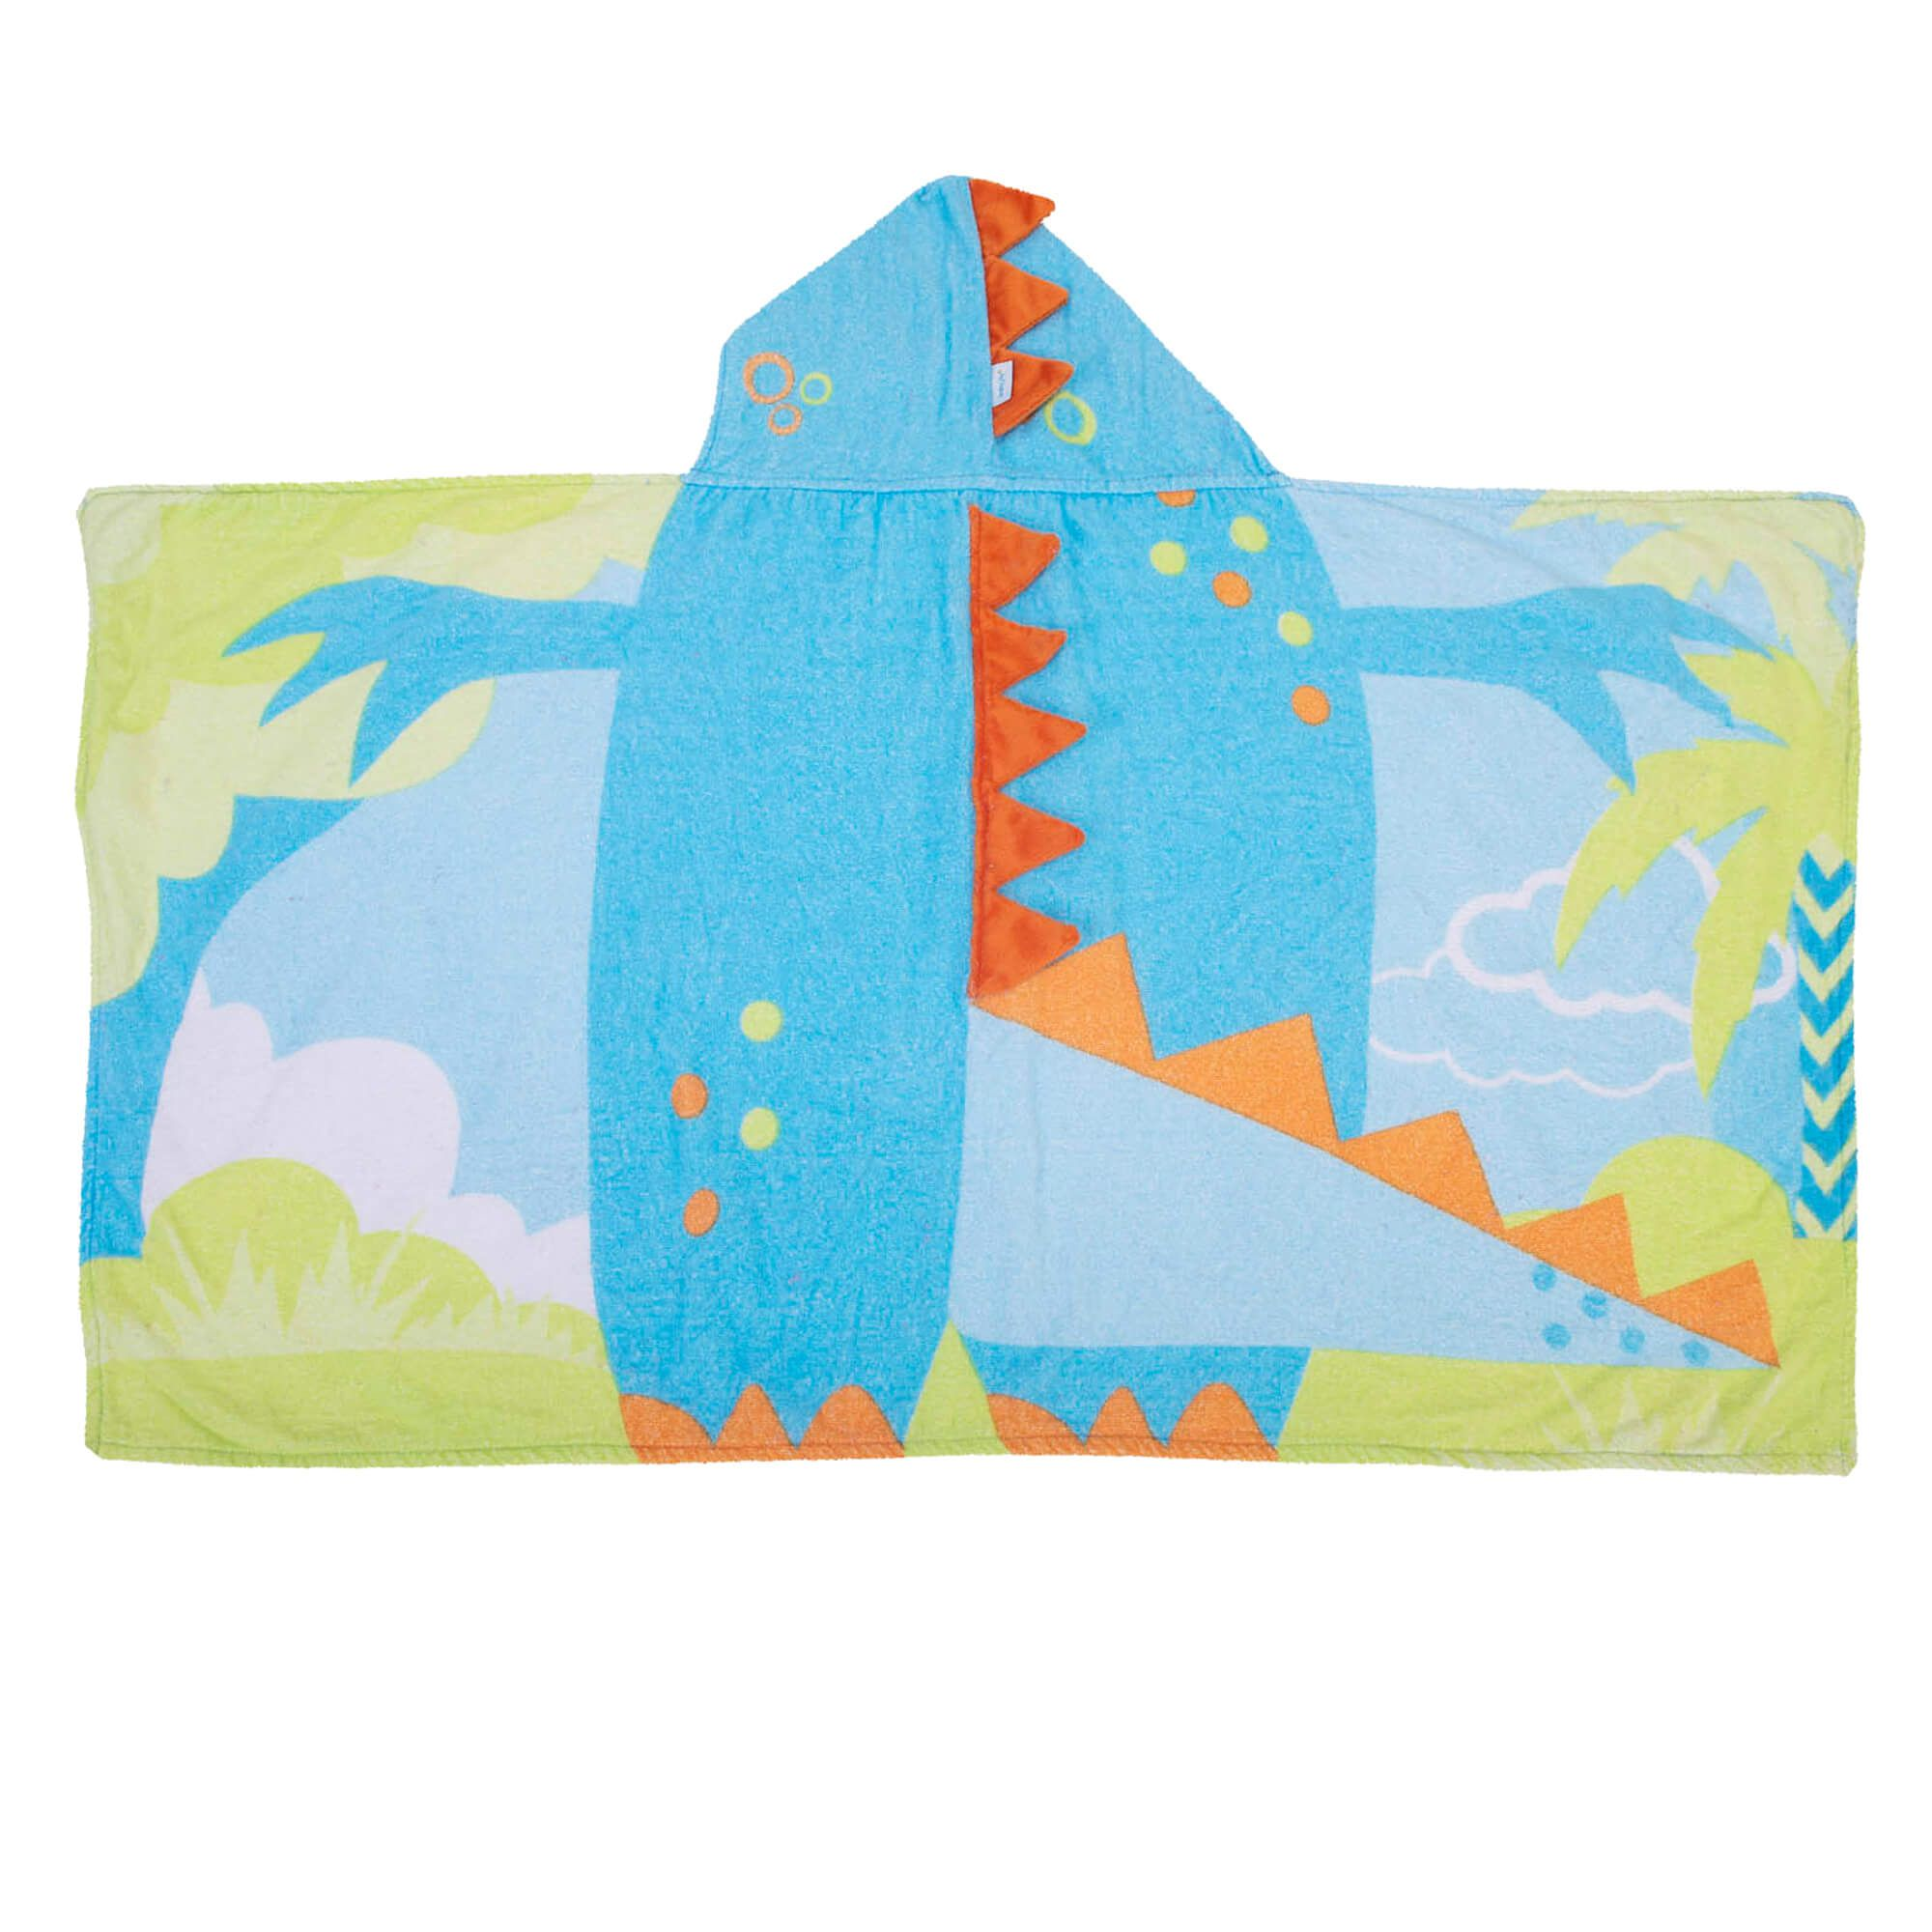 Toalha 3D Incomfral Babyjoy - Dino